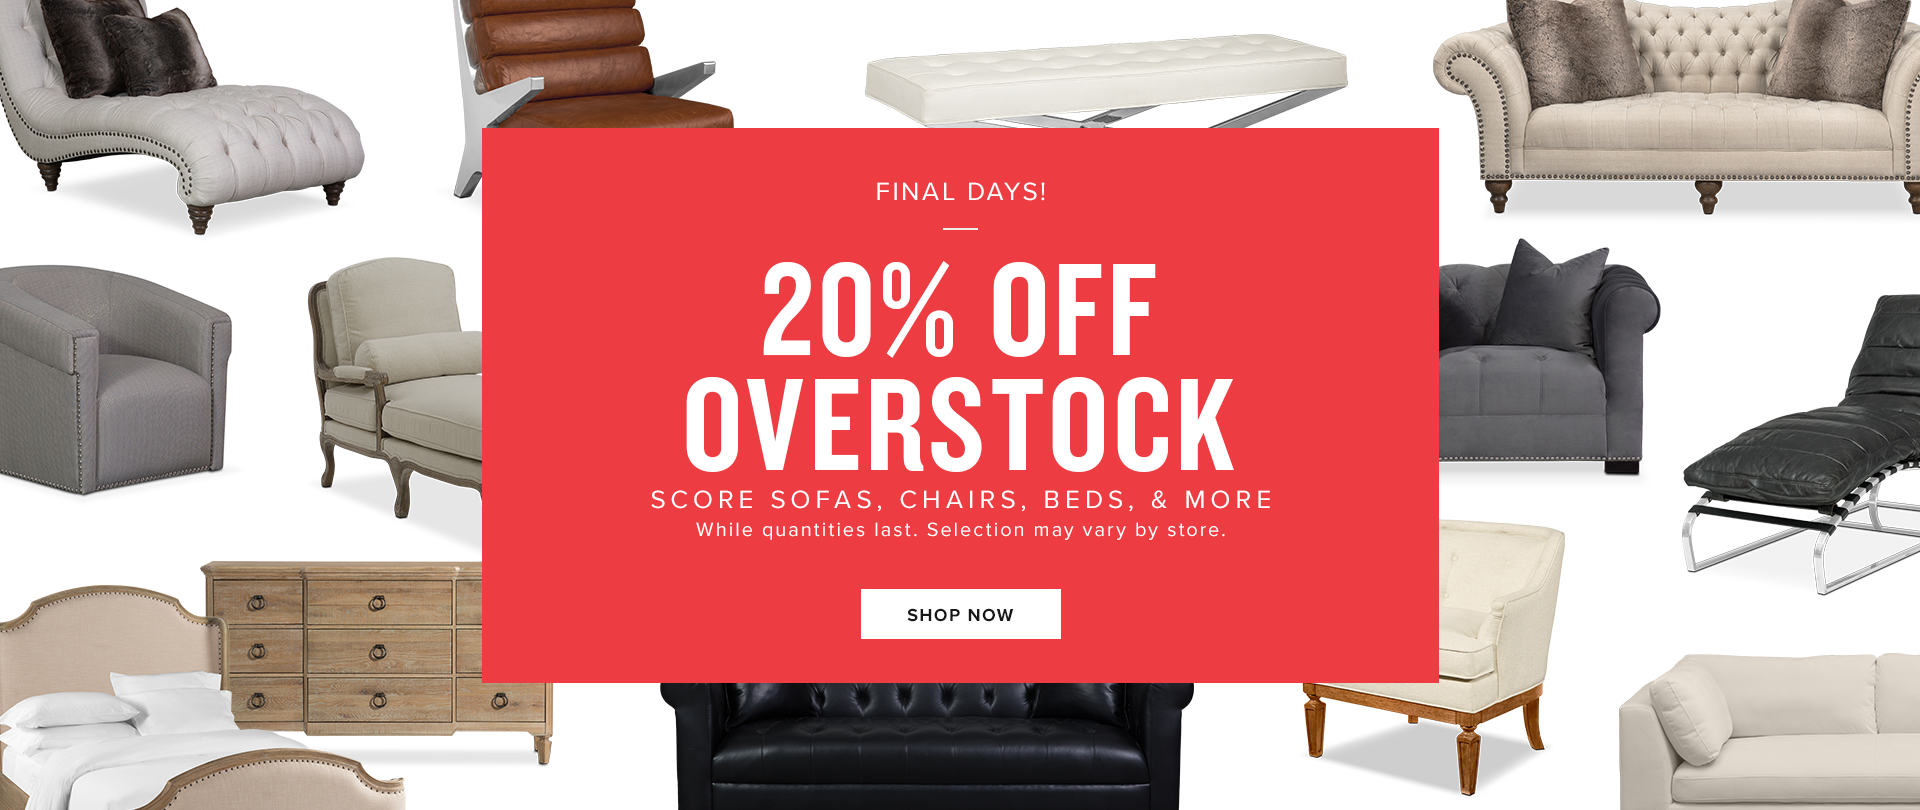 final days! 20% off overstock. shop now.